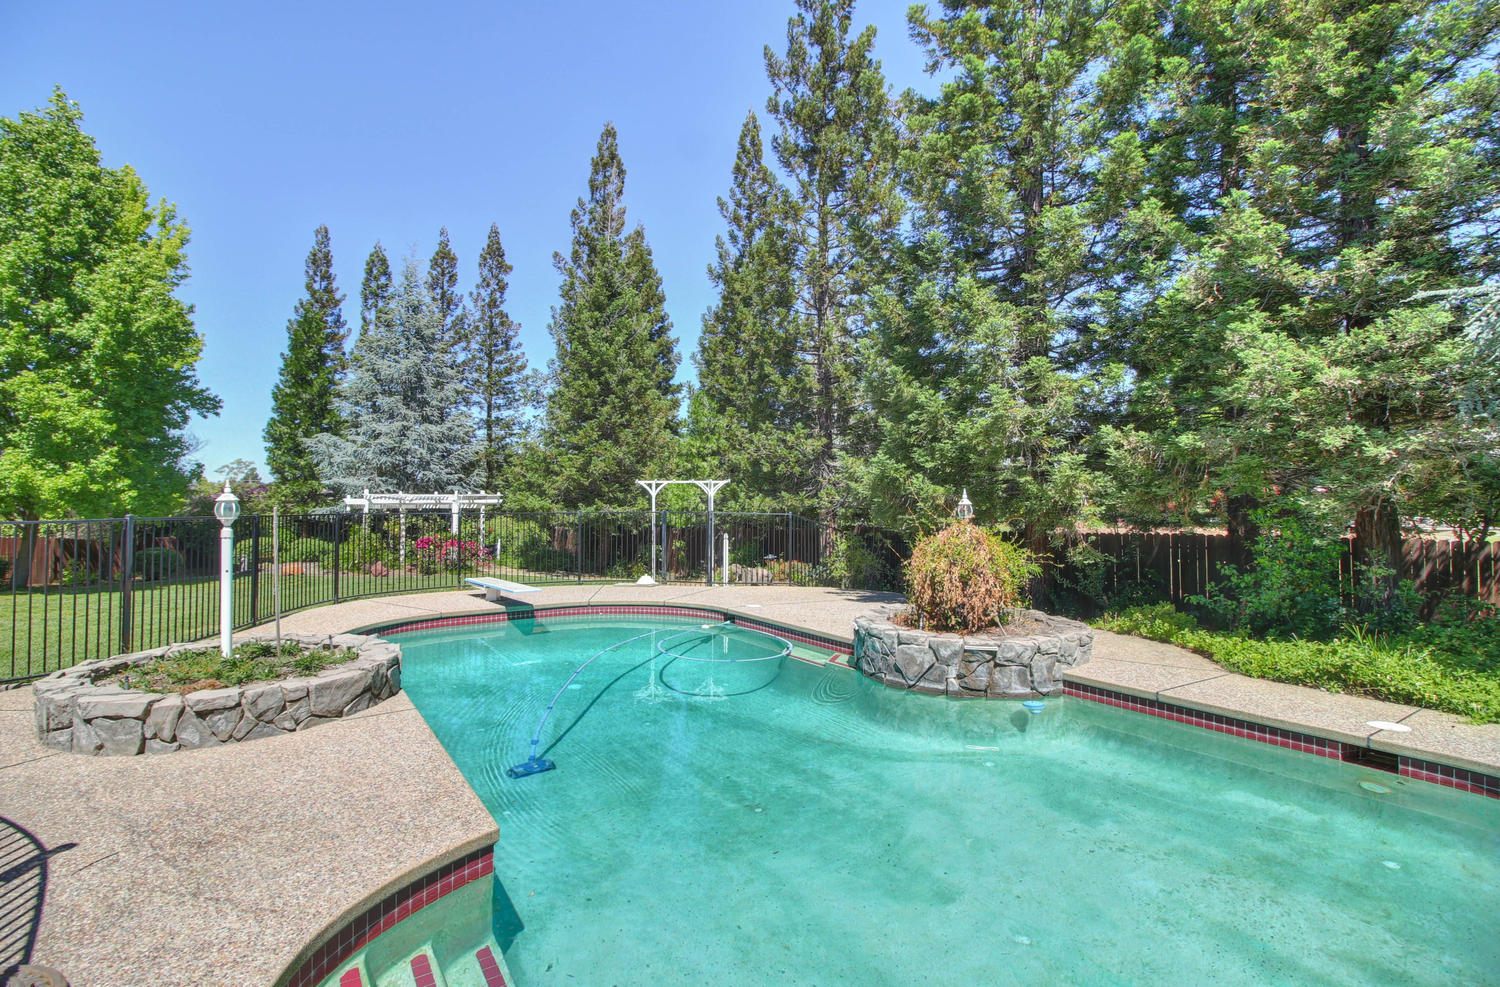 3594 Old Country Ct Roseville-large-044-44-44-1500x988-72dpi